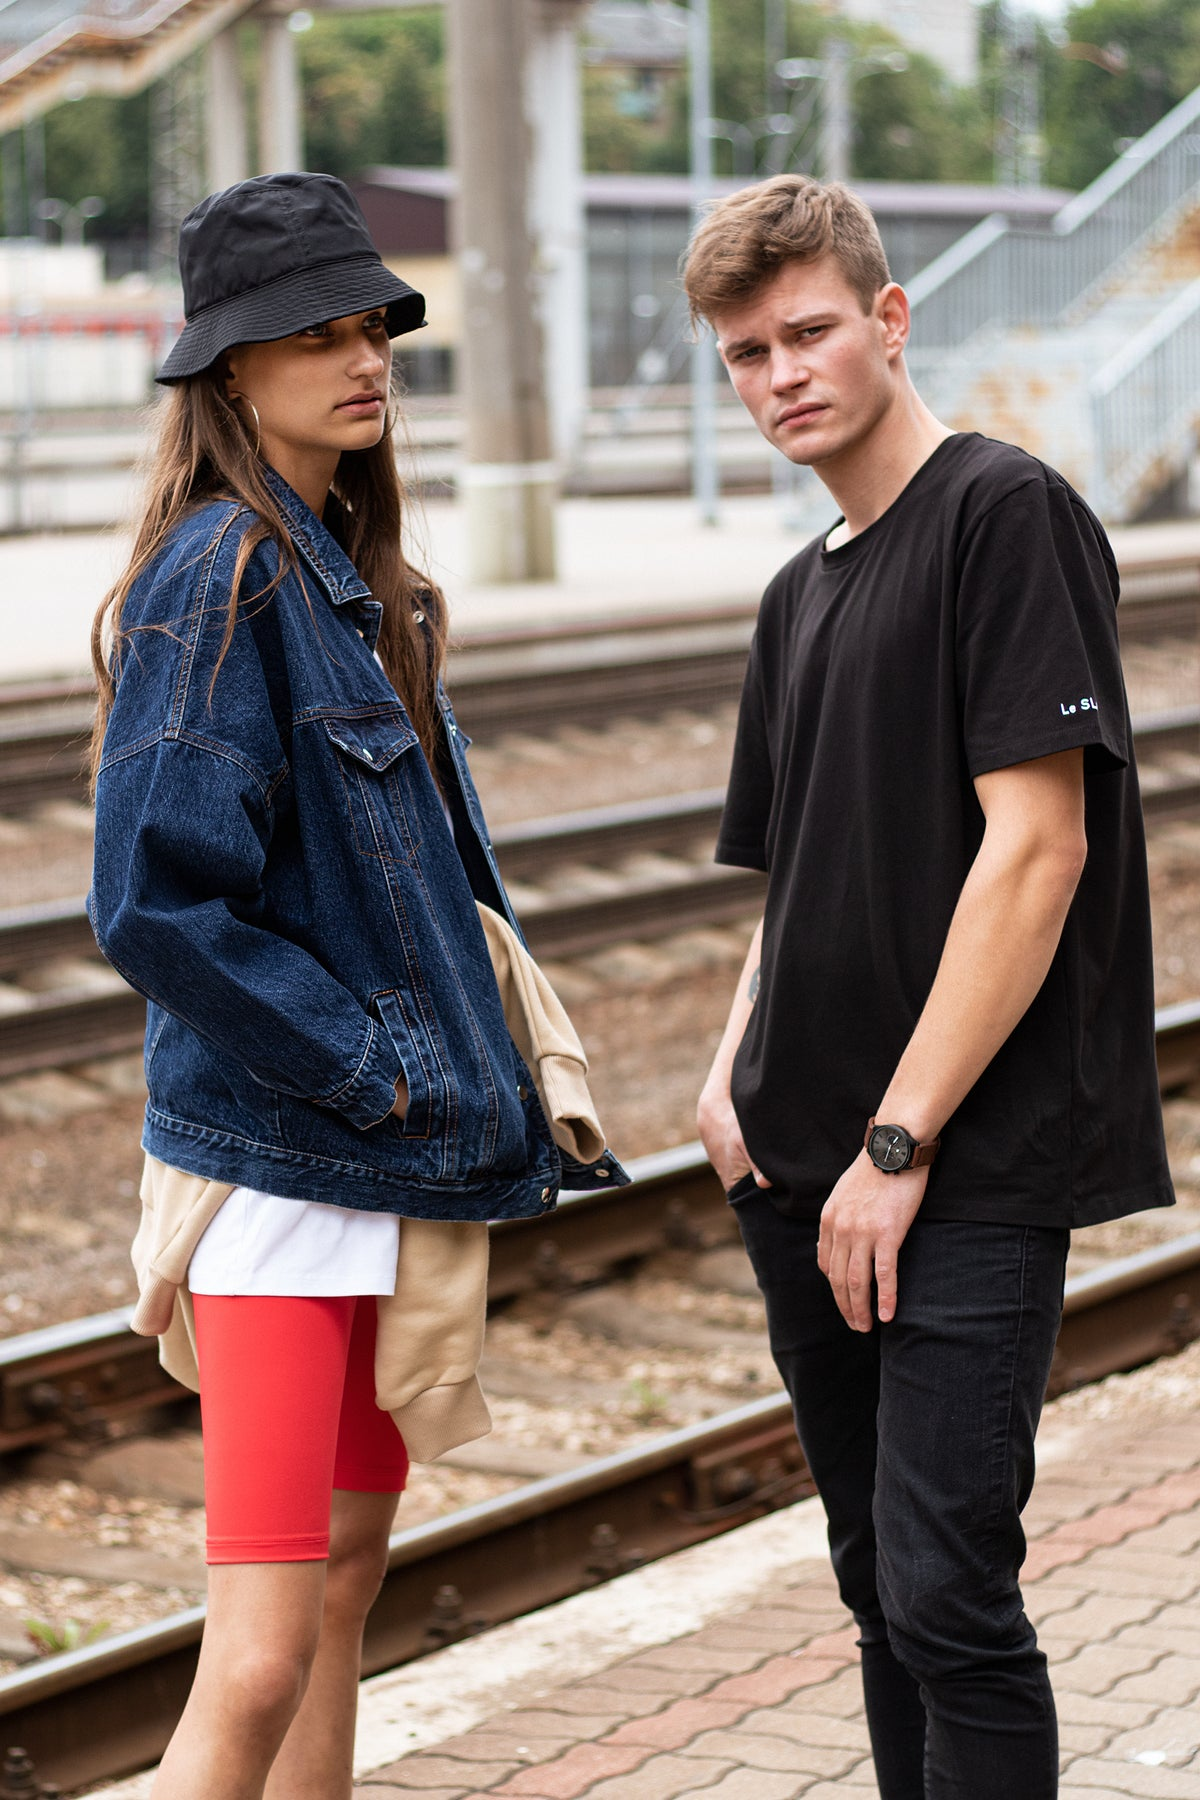 le-slap-couple-photoshoot-black-oversize-tshirt-students.jpg